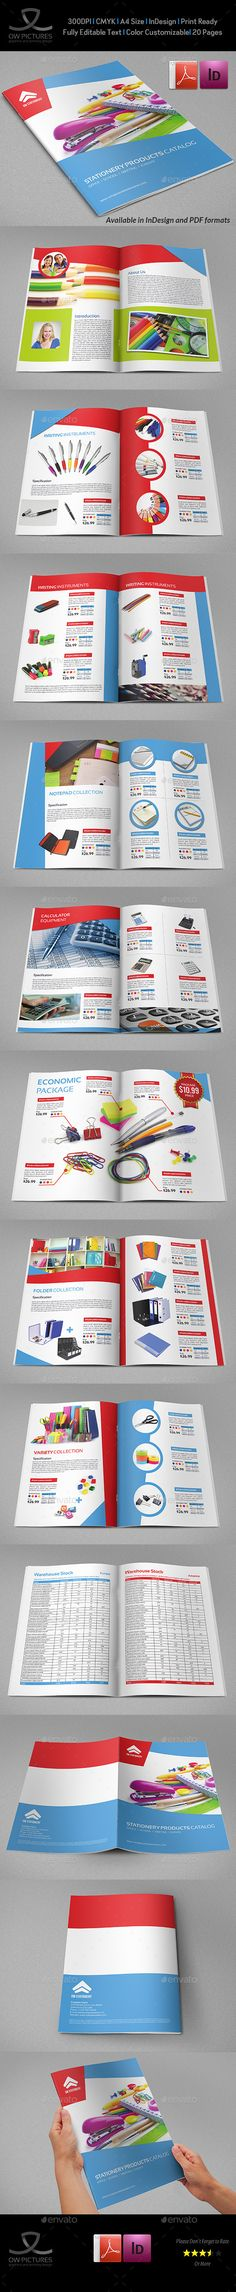 Stationery Products Catalog Brochure - 20 Pages Template InDesign INDD #design Download: http://graphicriver.net/item/stationery-products-catalog-brochure-20-pages/13248595?ref=ksioks